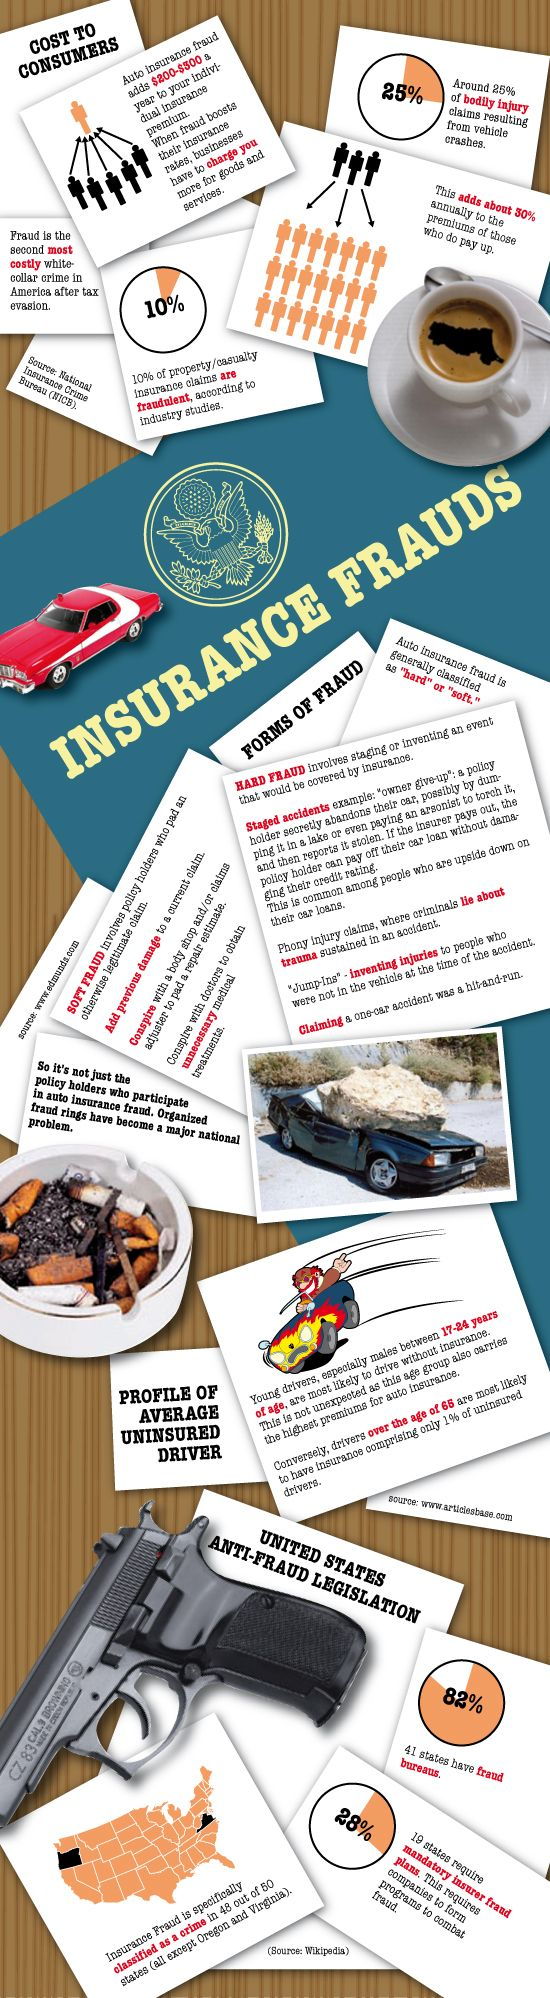 Infographic About Auto Insurance Fraud Car insurance